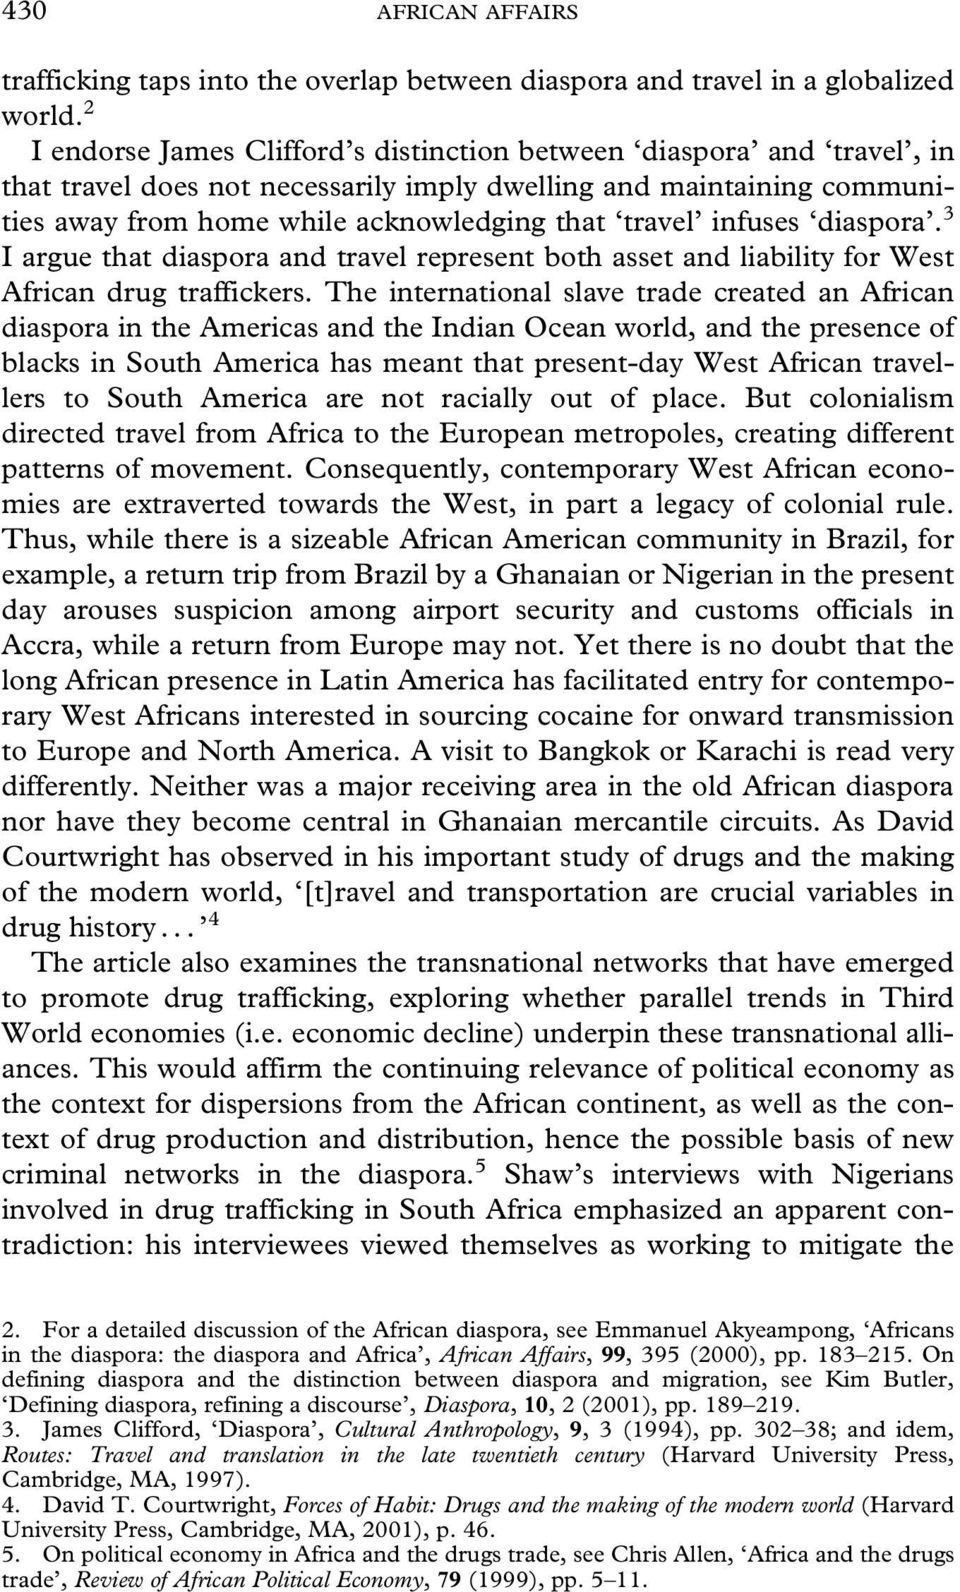 infuses diaspora. 3 I argue that diaspora and travel represent both asset and liability for West African drug traffickers.